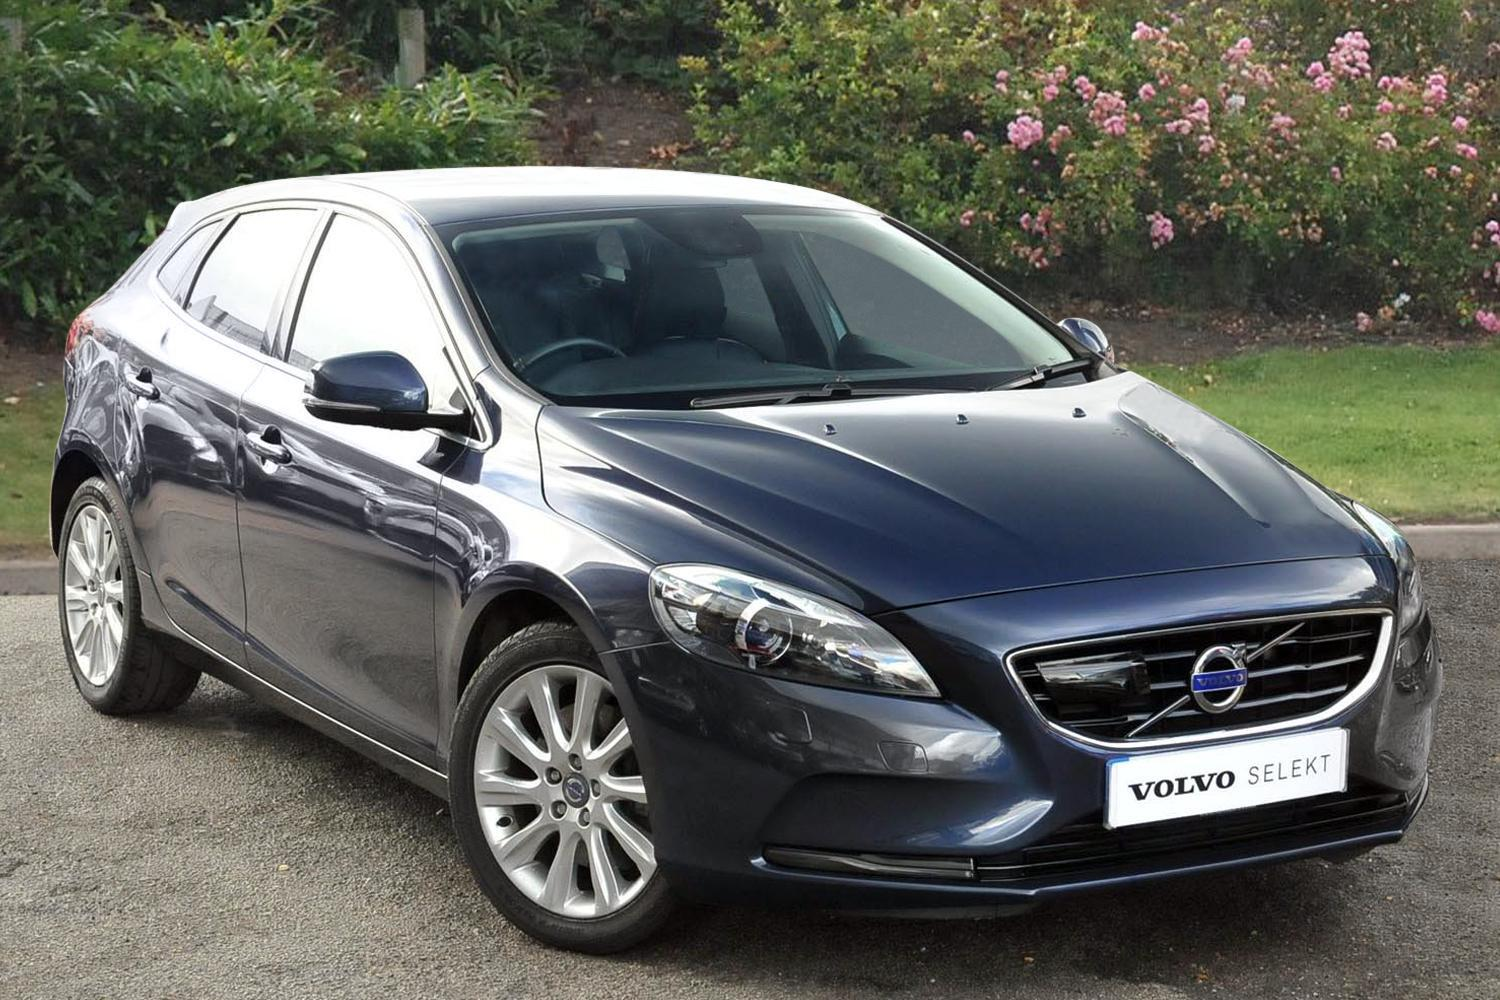 used volvo v40 d3 se lux nav 5dr geartronic diesel. Black Bedroom Furniture Sets. Home Design Ideas